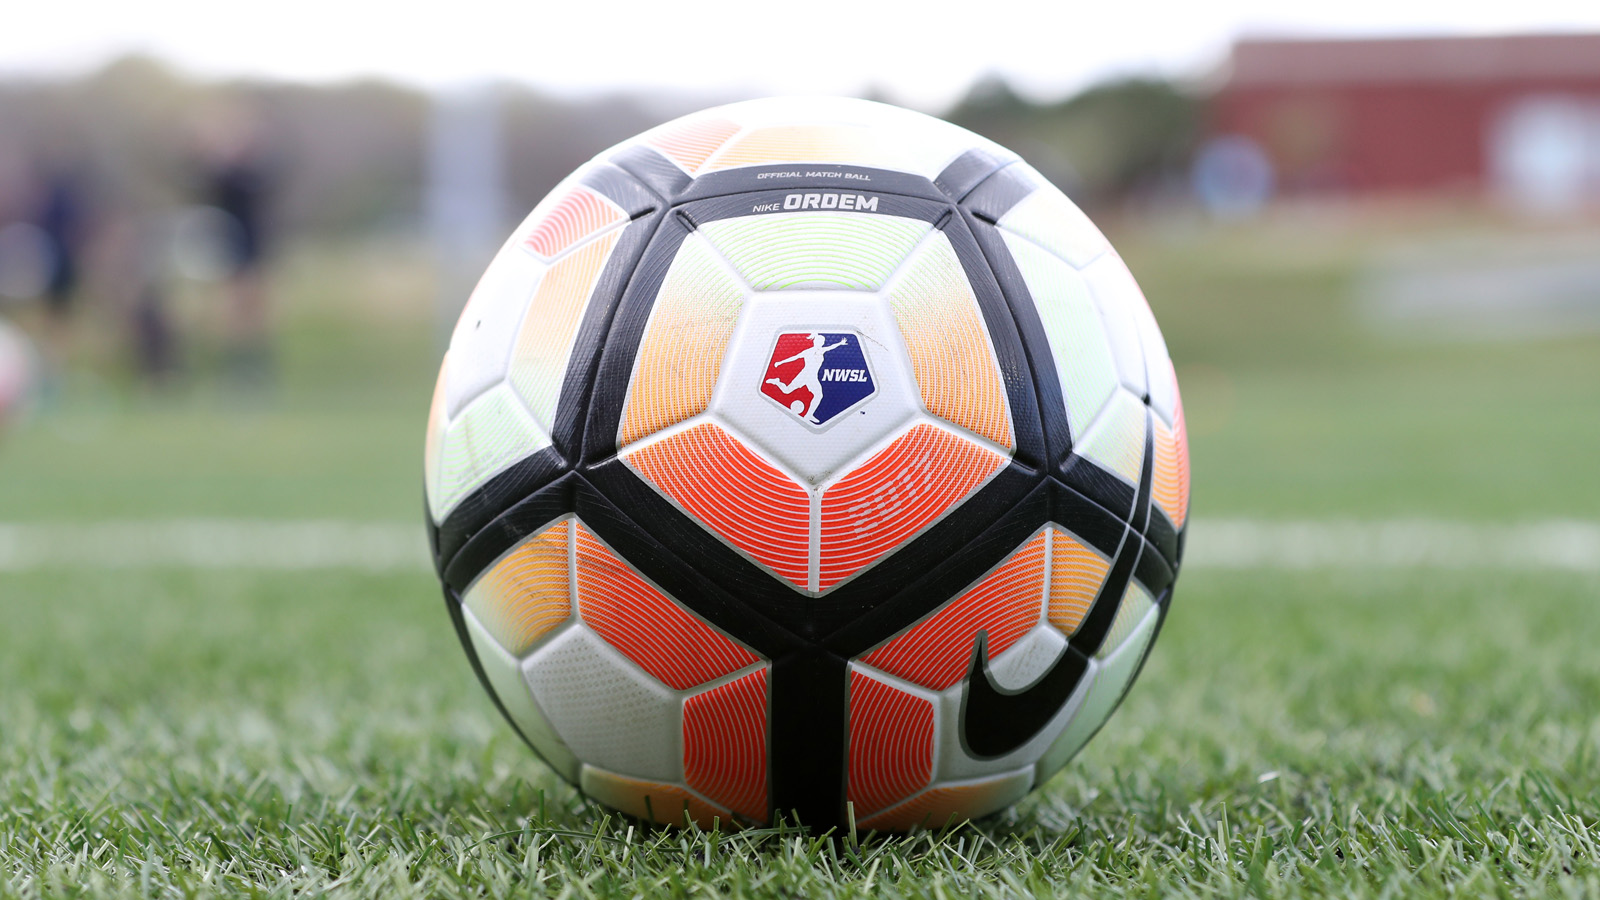 CHARLOTTE, NC - MARCH 25: 2017 NWSL match ball. The NWSL's North Carolina Courage played their first preseason game against the University of Tennessee Volunteers on March 25, 2017, at Queens University of Charlotte Sports Complex in Charlotte, NC. The Courage won the match 3-0. (Photo by Andy Mead/YCJ/Icon Sportswire via Getty Images)